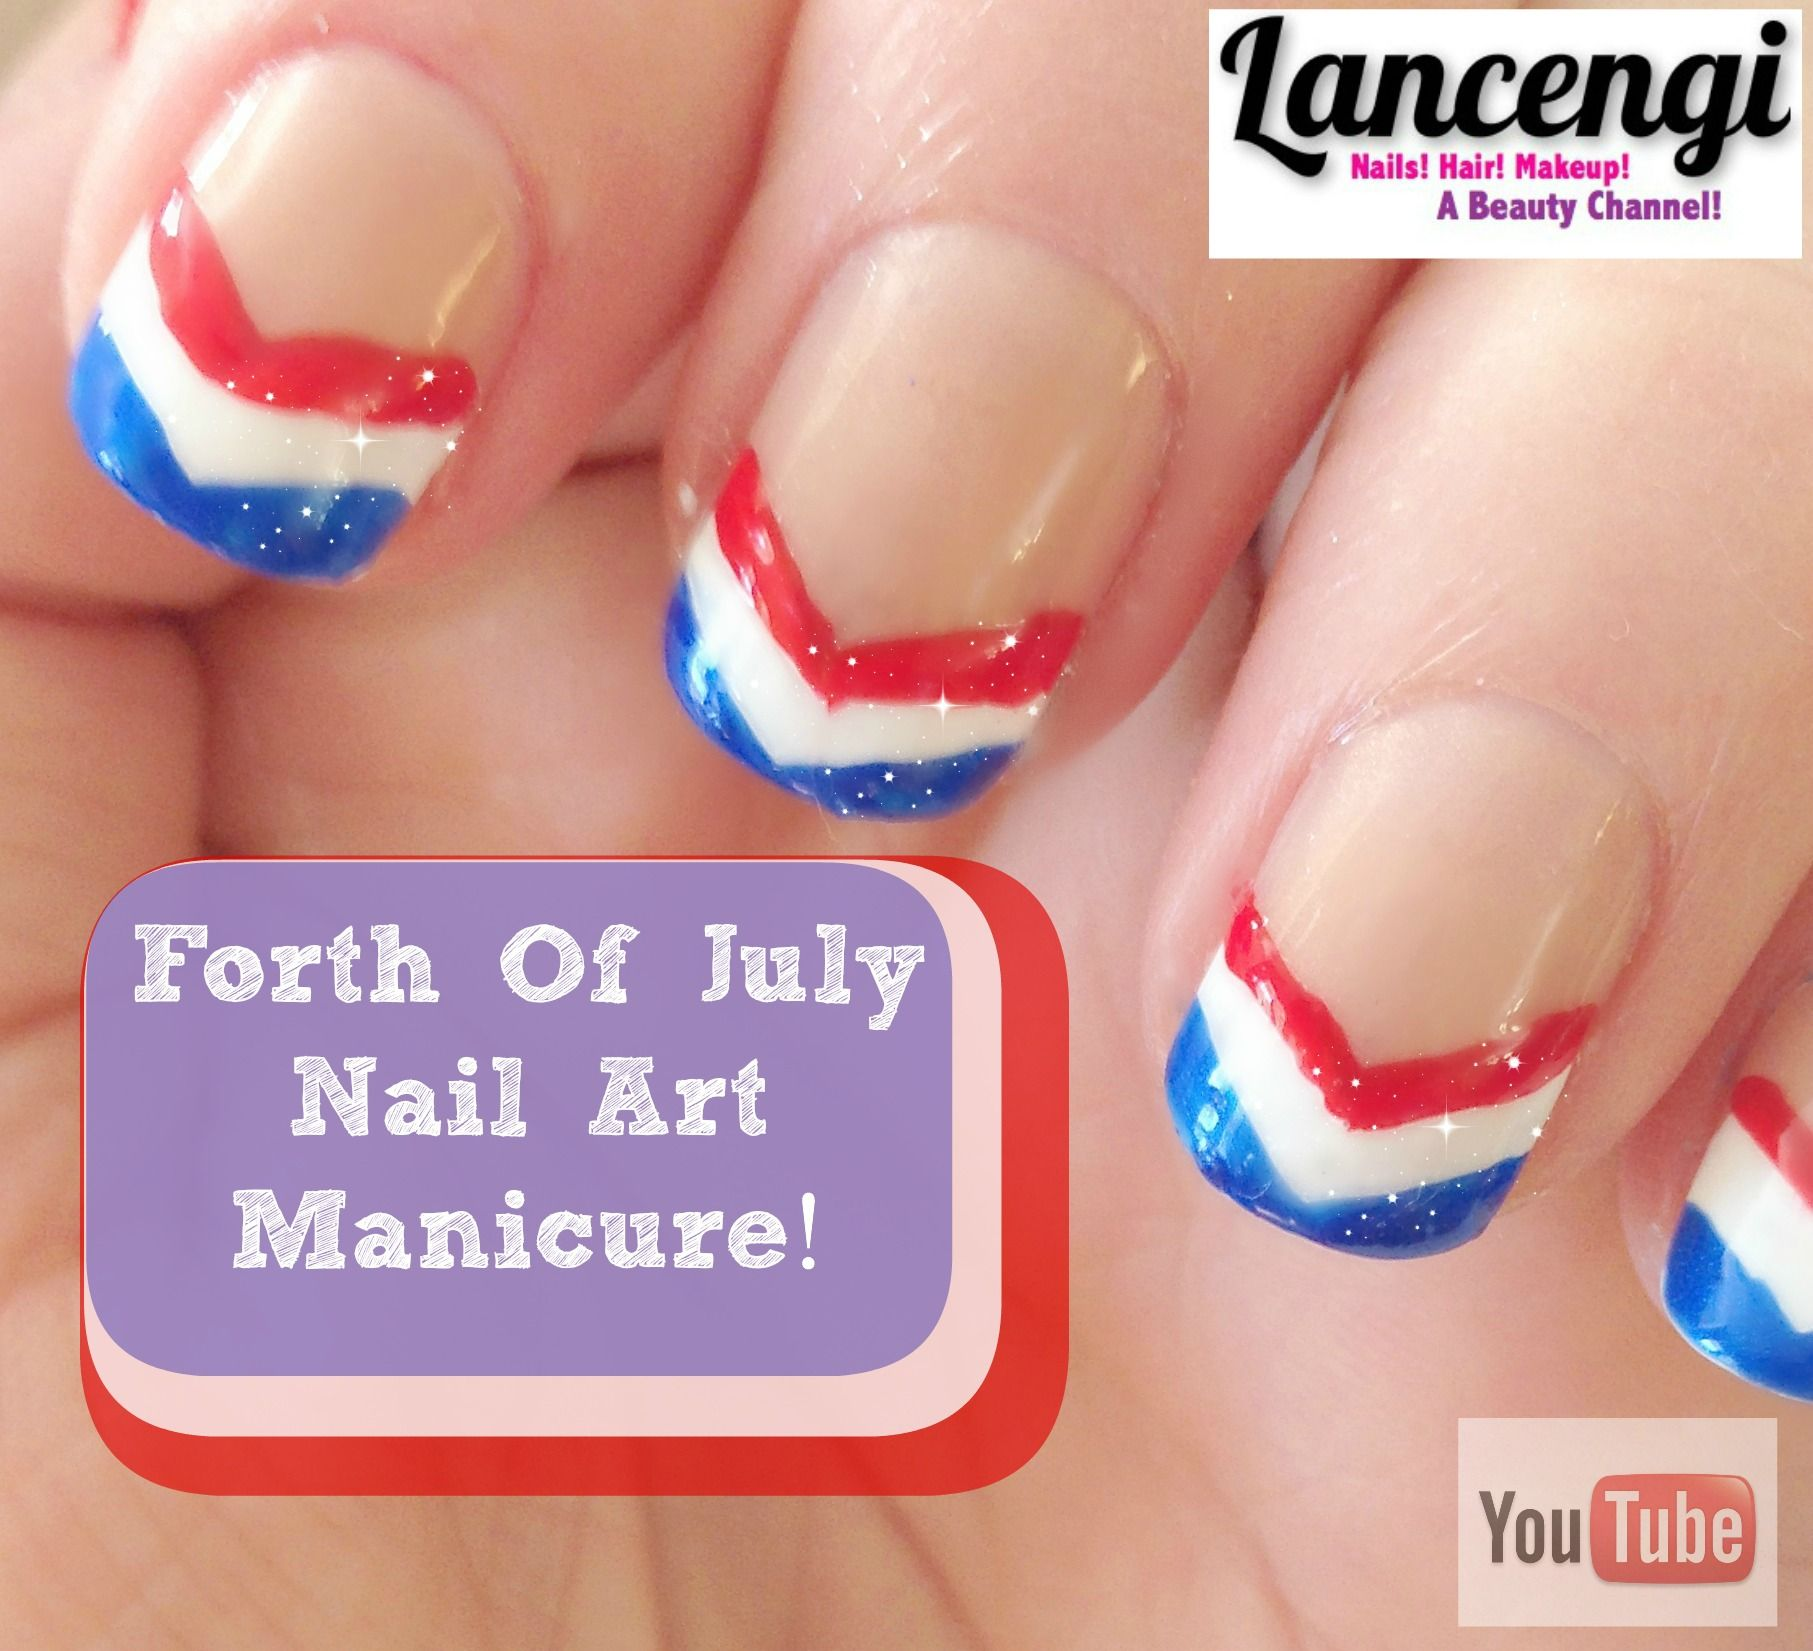 Nail Art Designs Tutorial Youtube: Forth Of July Nail Art Manicure #4thofJuly #ForthOfJuly